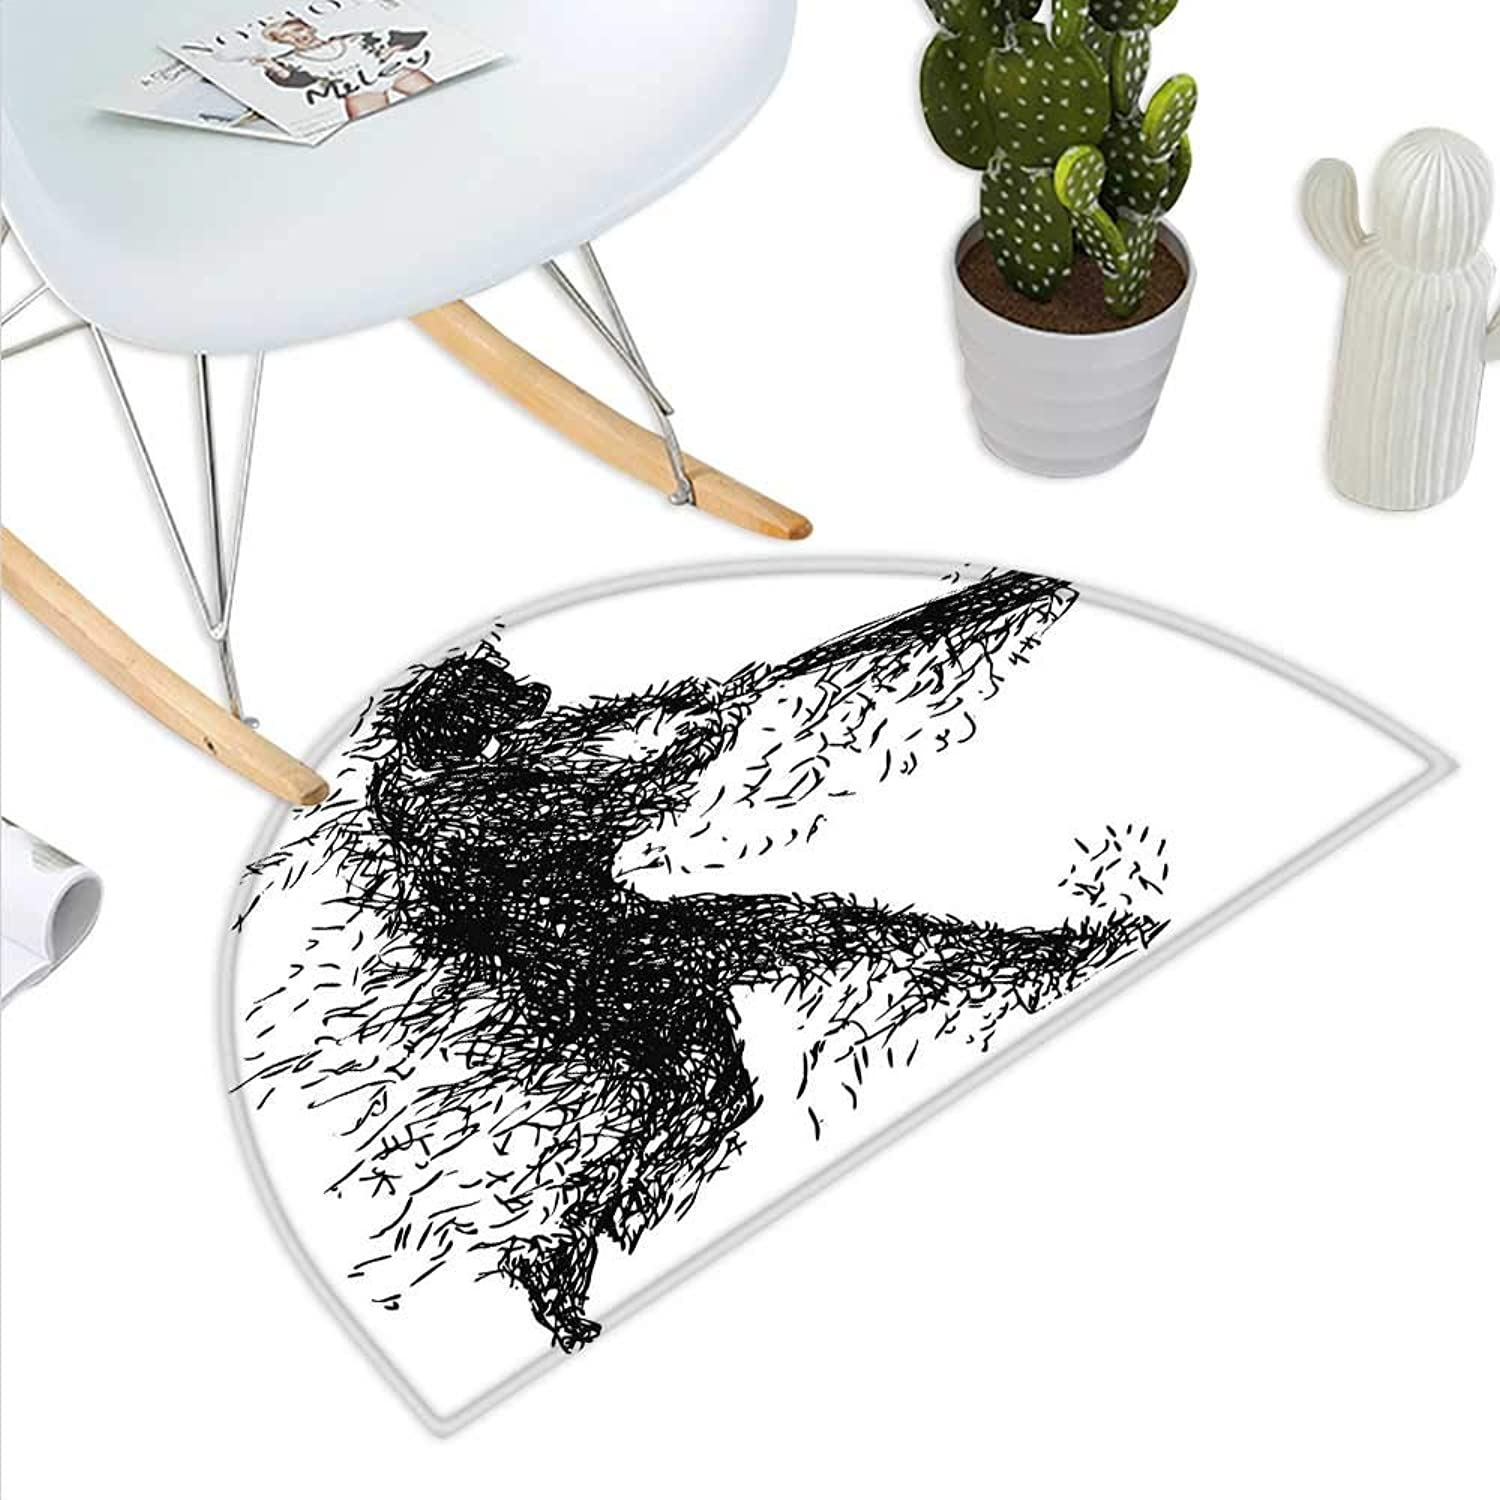 Black and White Semicircle Doormat Abstract Artistic Illustration of a Baseball Player Posing Grunge Sports Halfmoon doormats H 31.5  xD 47.2  Black White